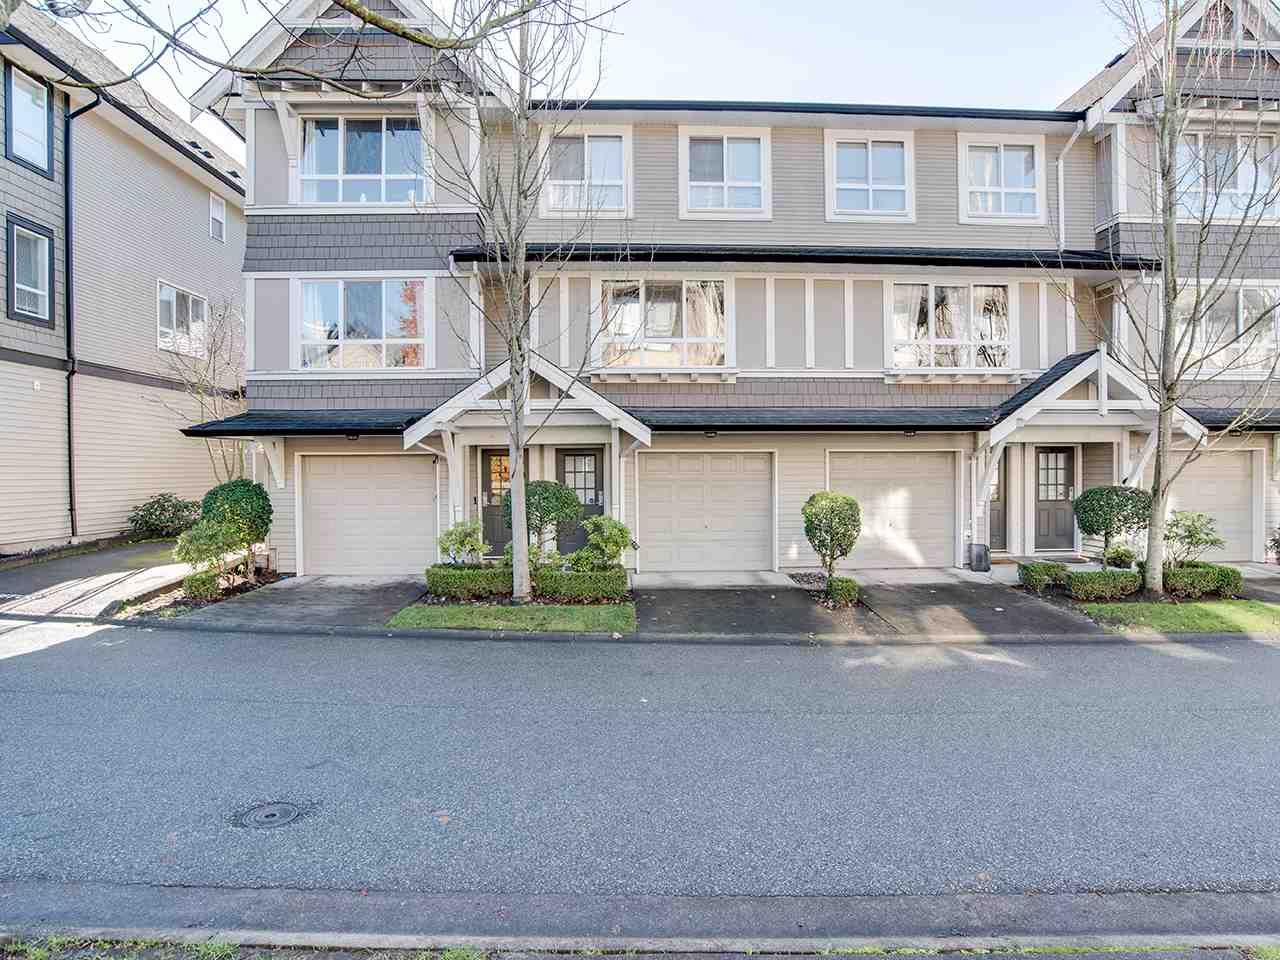 """Main Photo: 8 6747 203 Street in Langley: Willoughby Heights Townhouse for sale in """"SAGEBROOK"""" : MLS®# R2323050"""